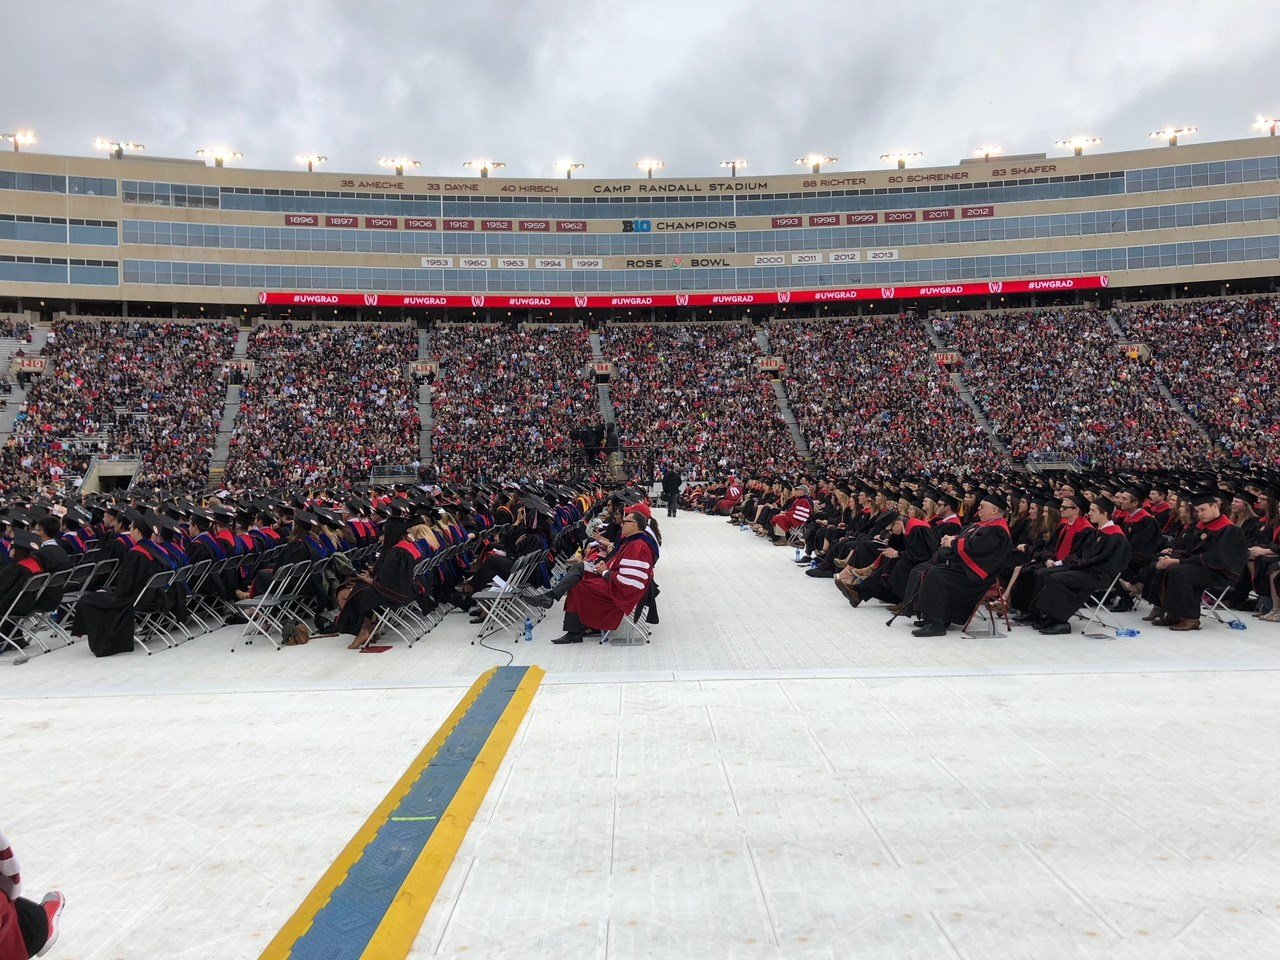 UW graduates seated during the 2018 spring commencement ceremony at Camp Randall.